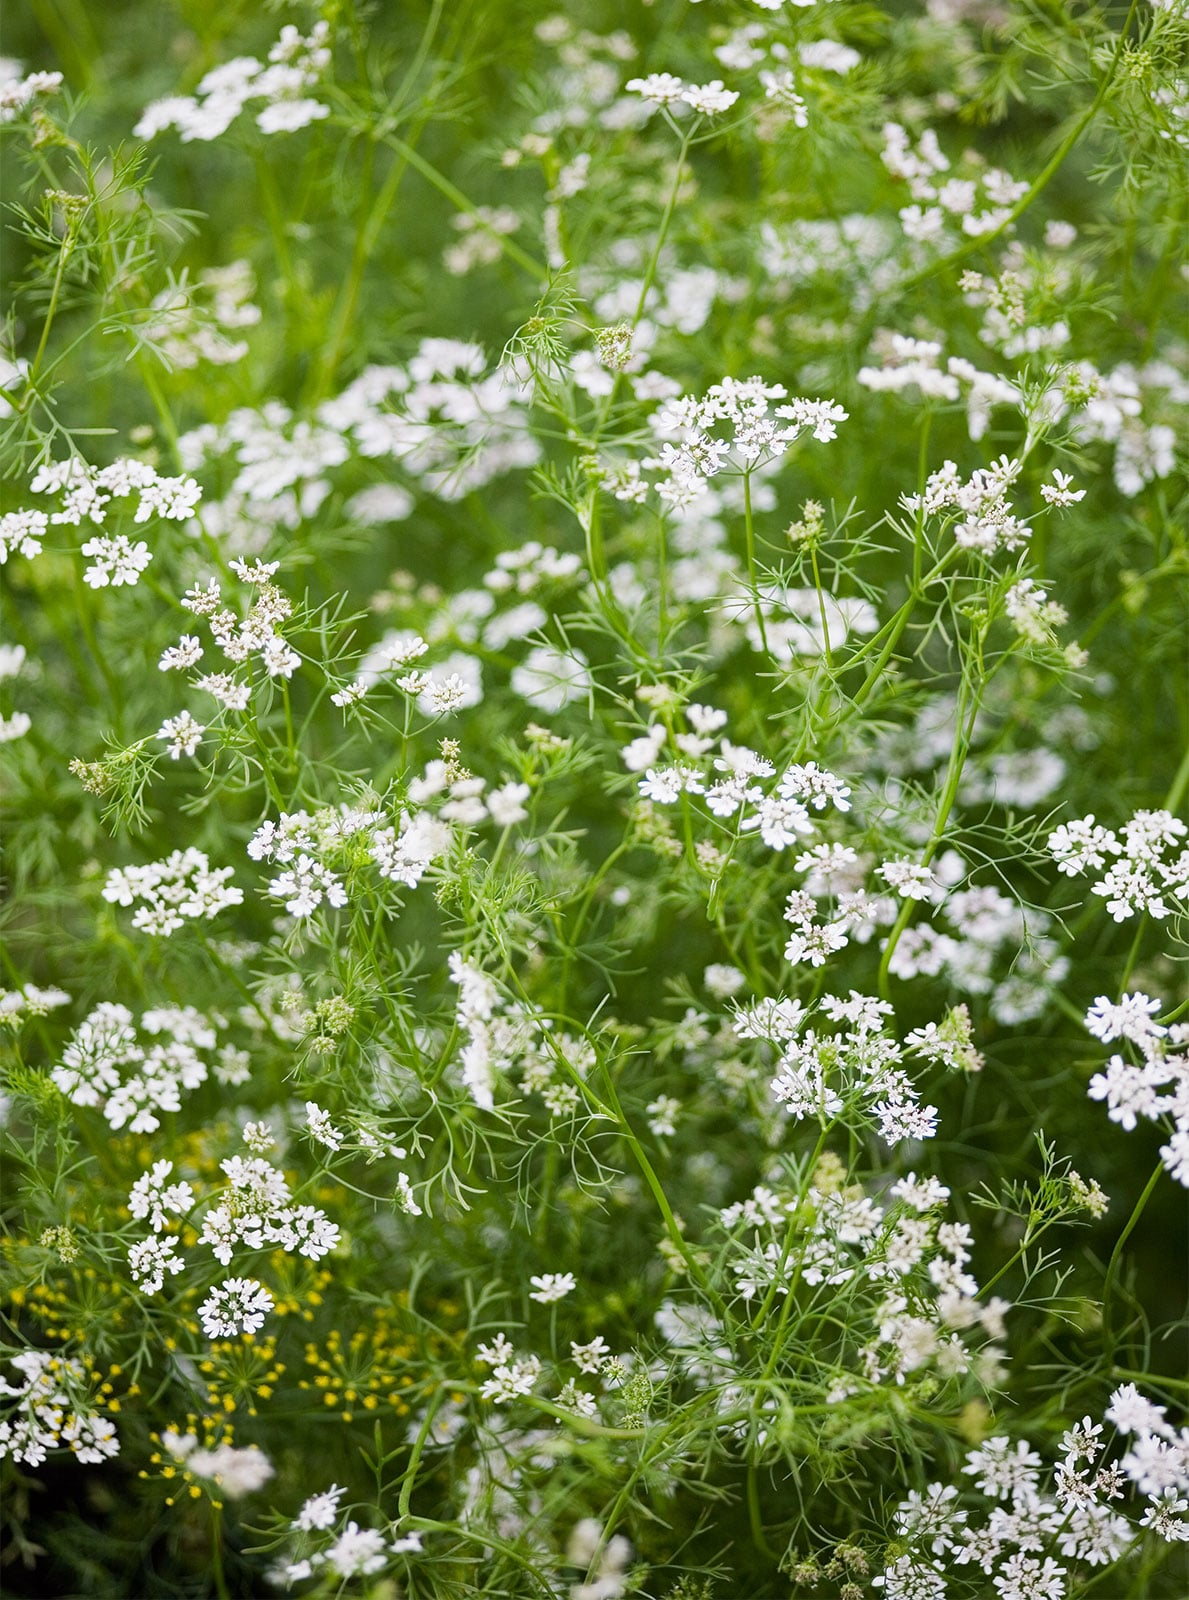 Pest control in the garden doesn't have to mean chemicals. Flowers & other plants for natural pest control are not only effective but easy on the eyes.